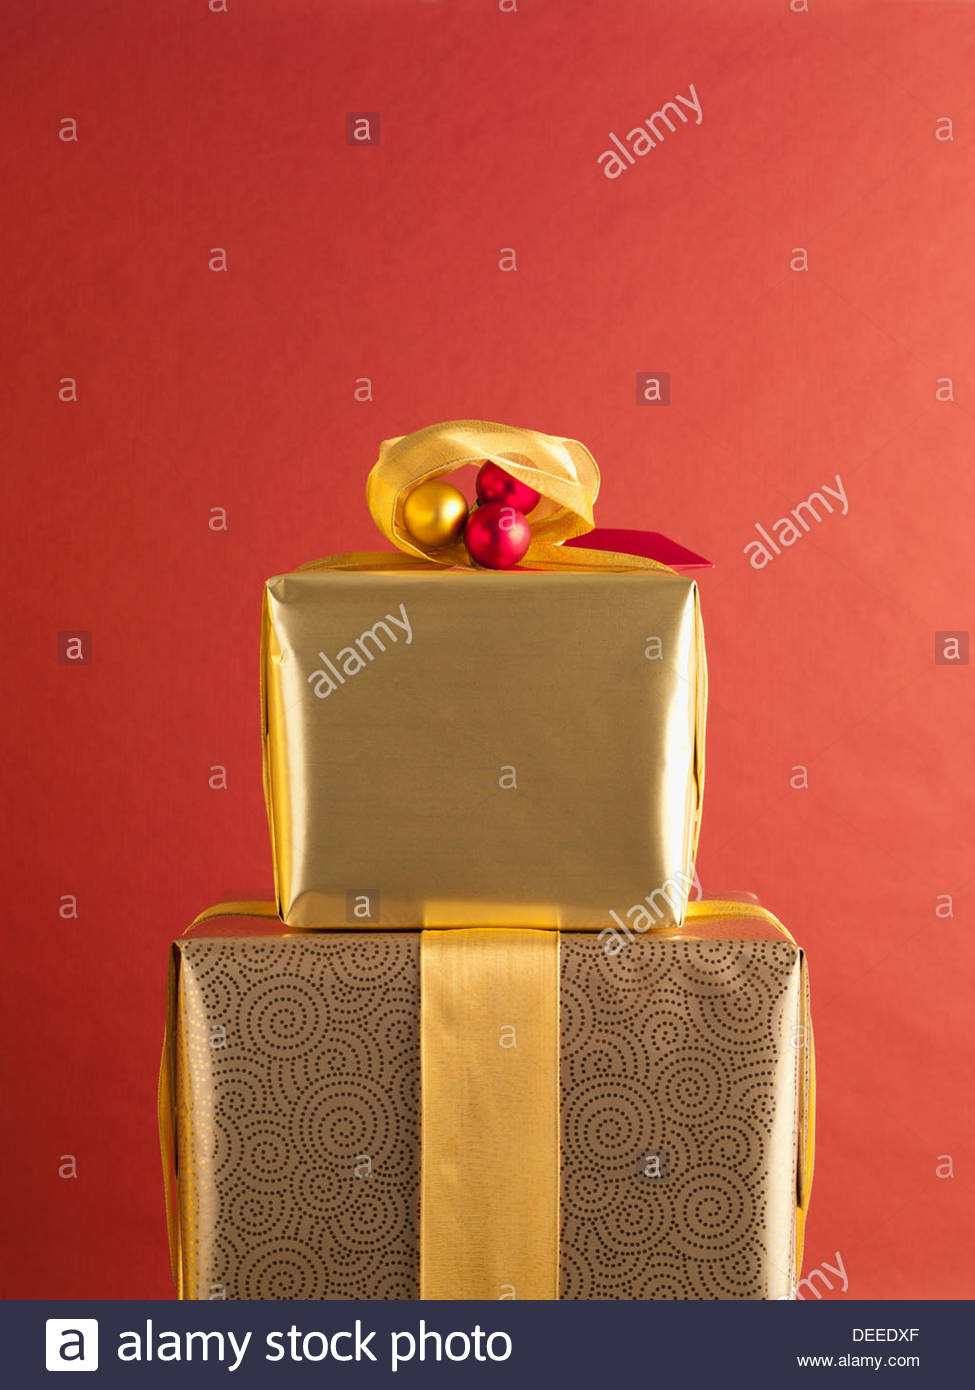 Christmas gifts with gold ribbon - Stock Image